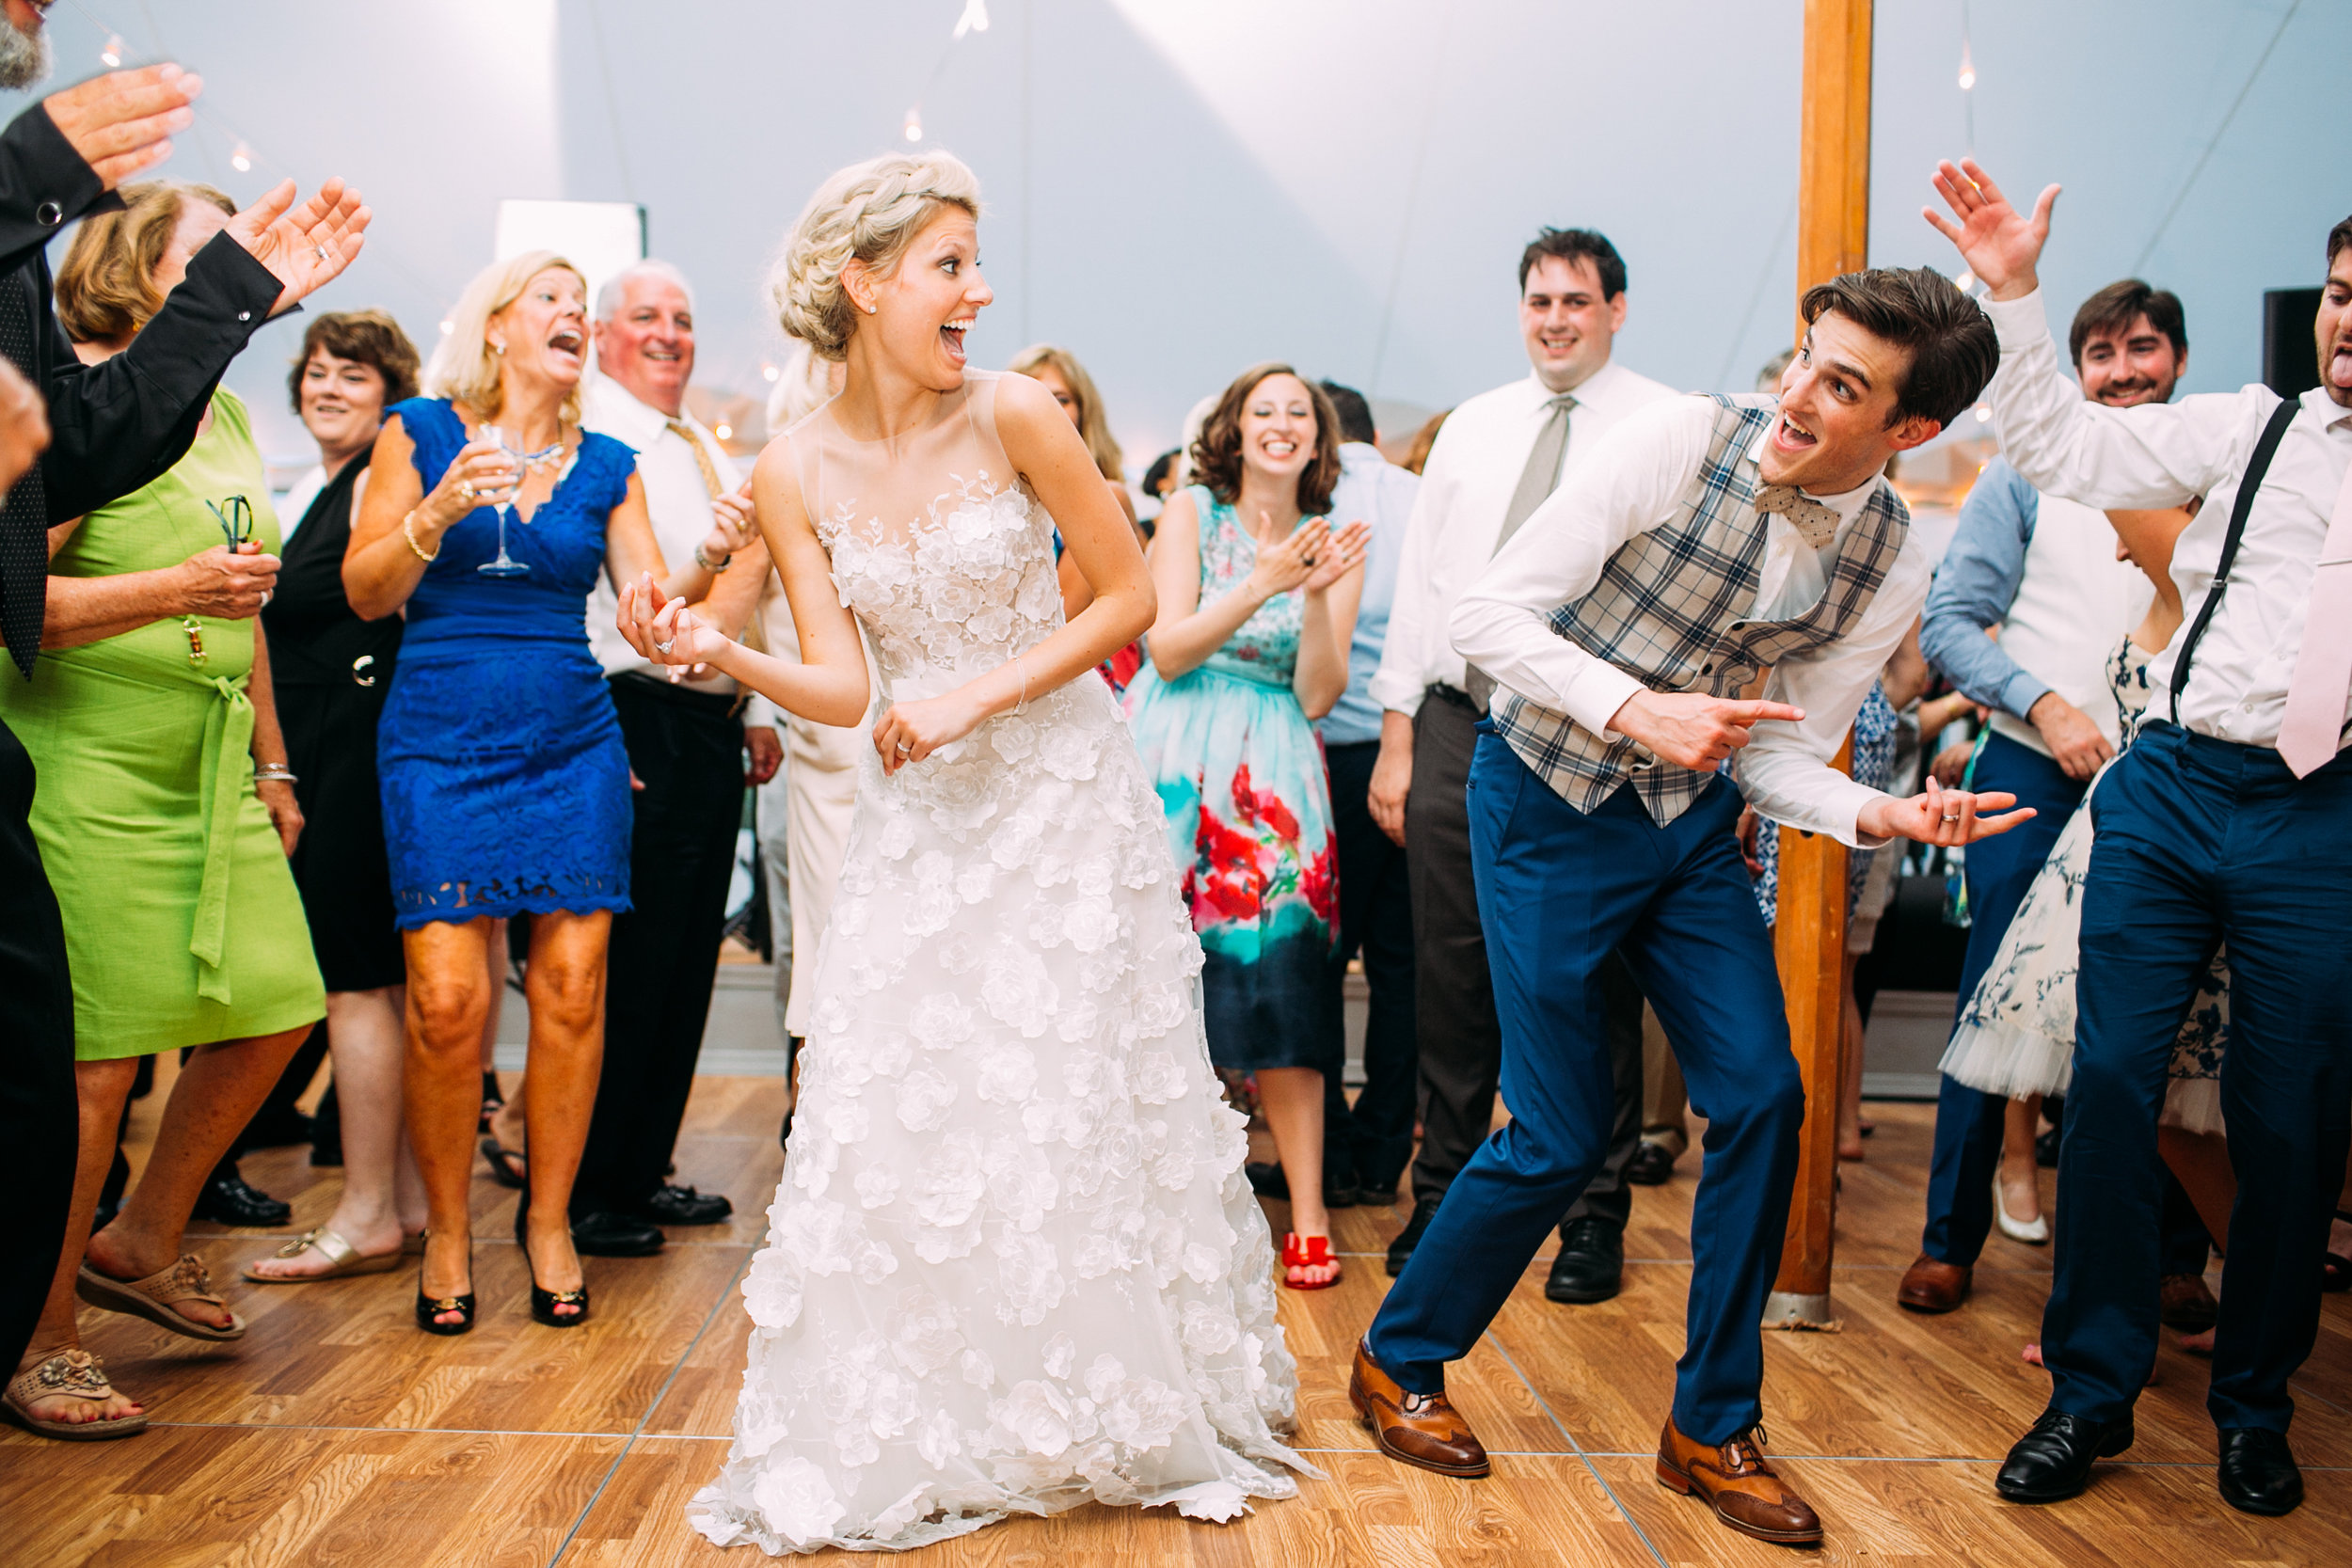 katie stoops photography-inn at perry cabin wedding47.jpg